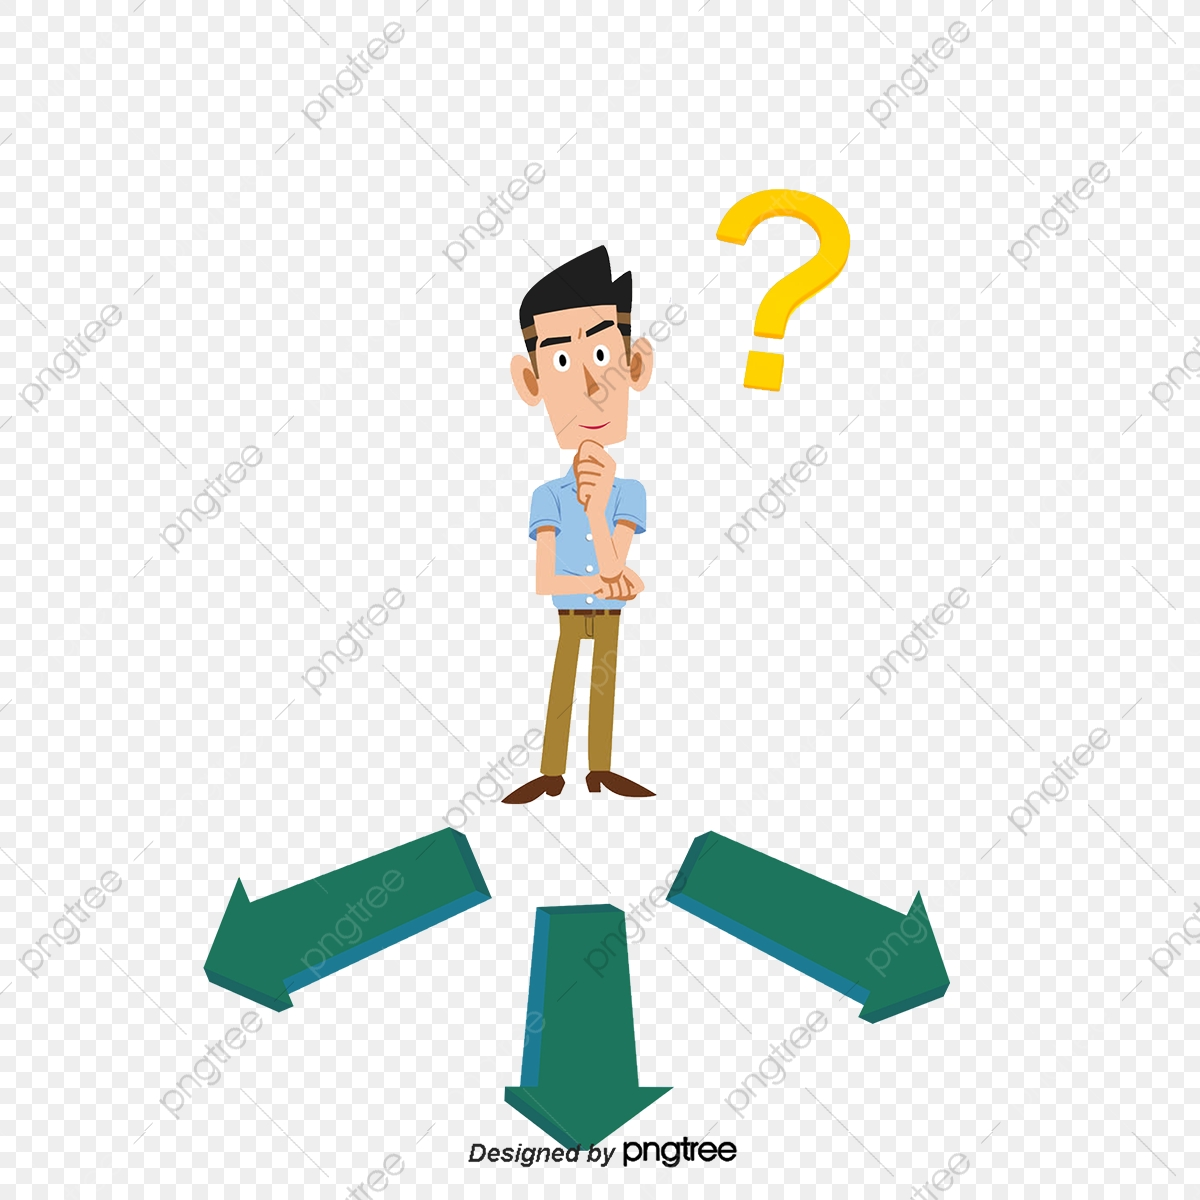 Face The Choice, Select, Variety, Cartoon PNG Transparent Clipart.